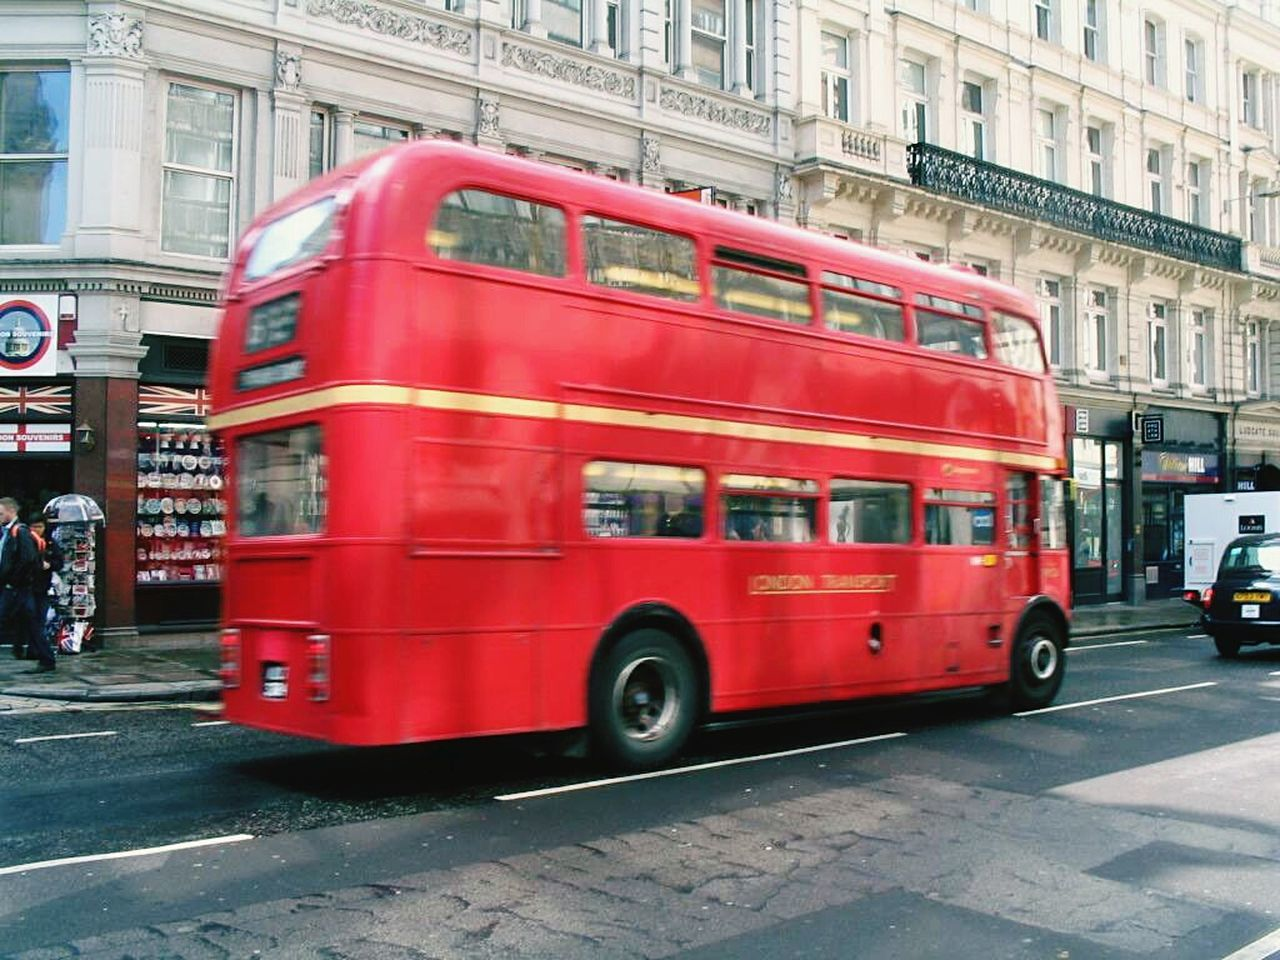 Transportation Transport London Bus London Buses Red City Architecture Built Structure Outdoors Cultures No People Day LONDON❤ Vacations Cityscape Thames River Royal Family Government Architecture City Multi Colored Street Old-fashioned Landscape Autumn